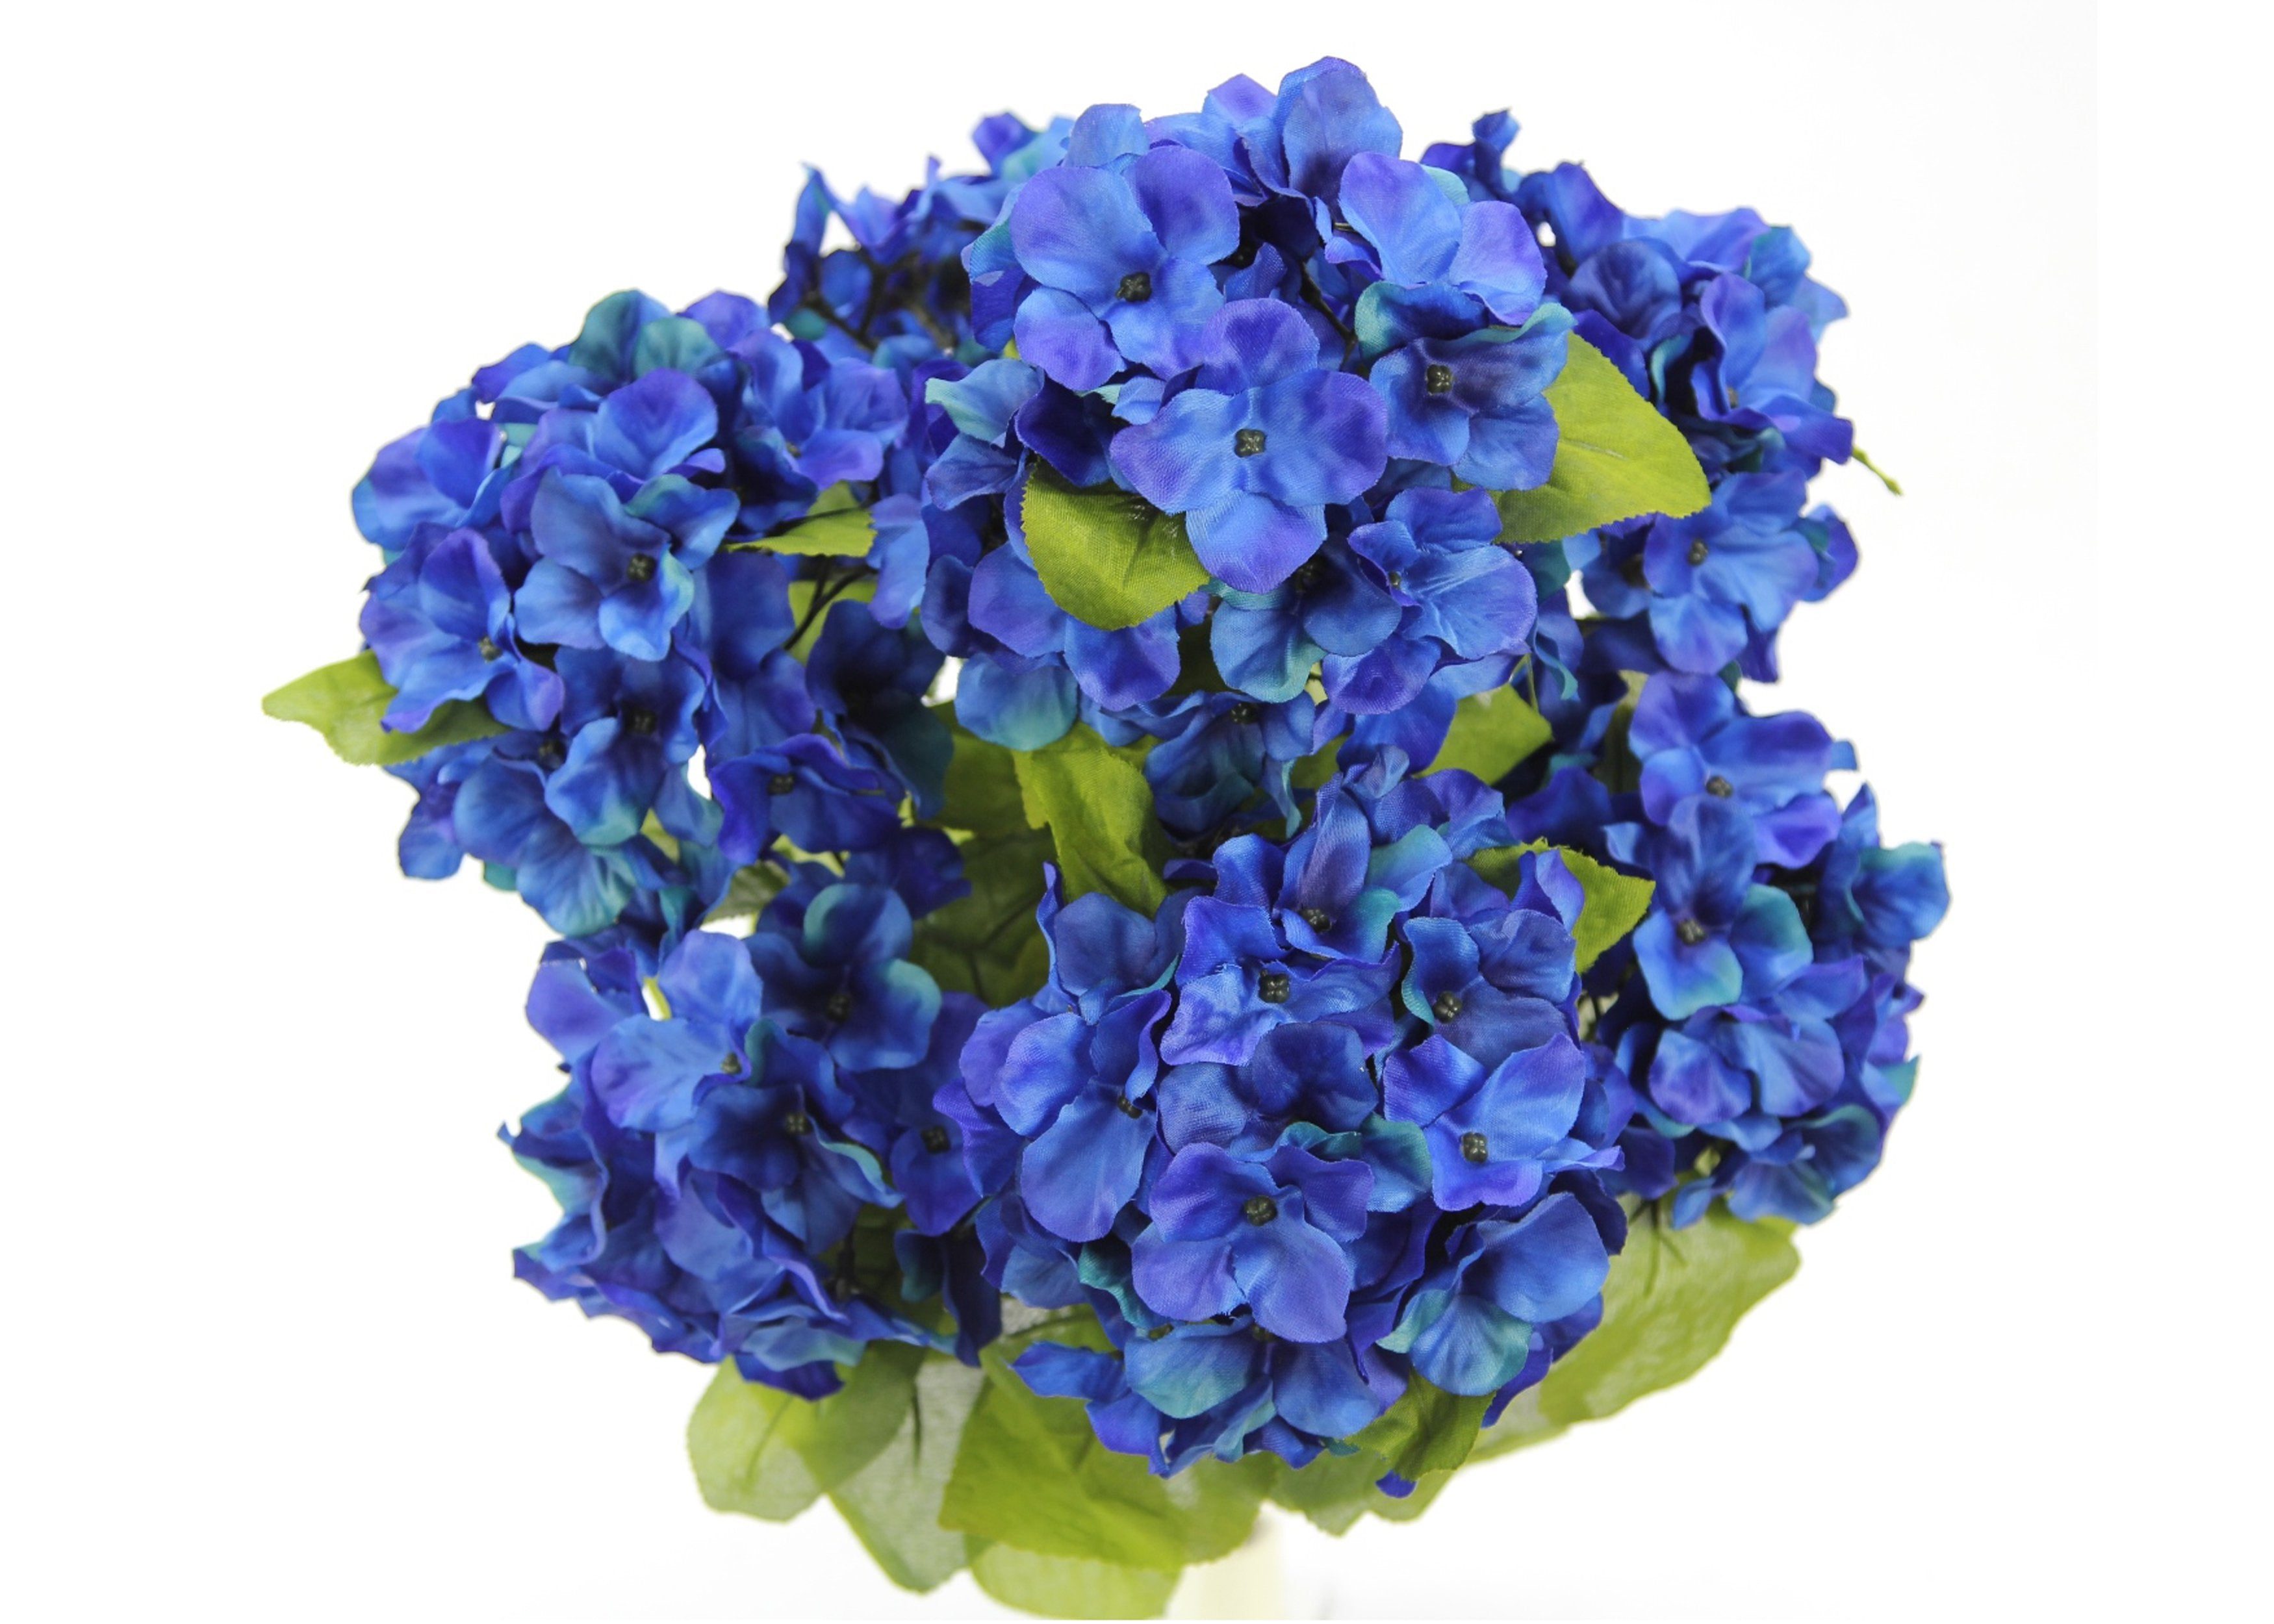 Satin hydrangea silk flower bush 7 heads royal blue 645338874499 ebay our satin hydrangea artificial flower bush is 11 copy from the real one very lifelike and beautiful it is perfect for your wedding arrangement izmirmasajfo